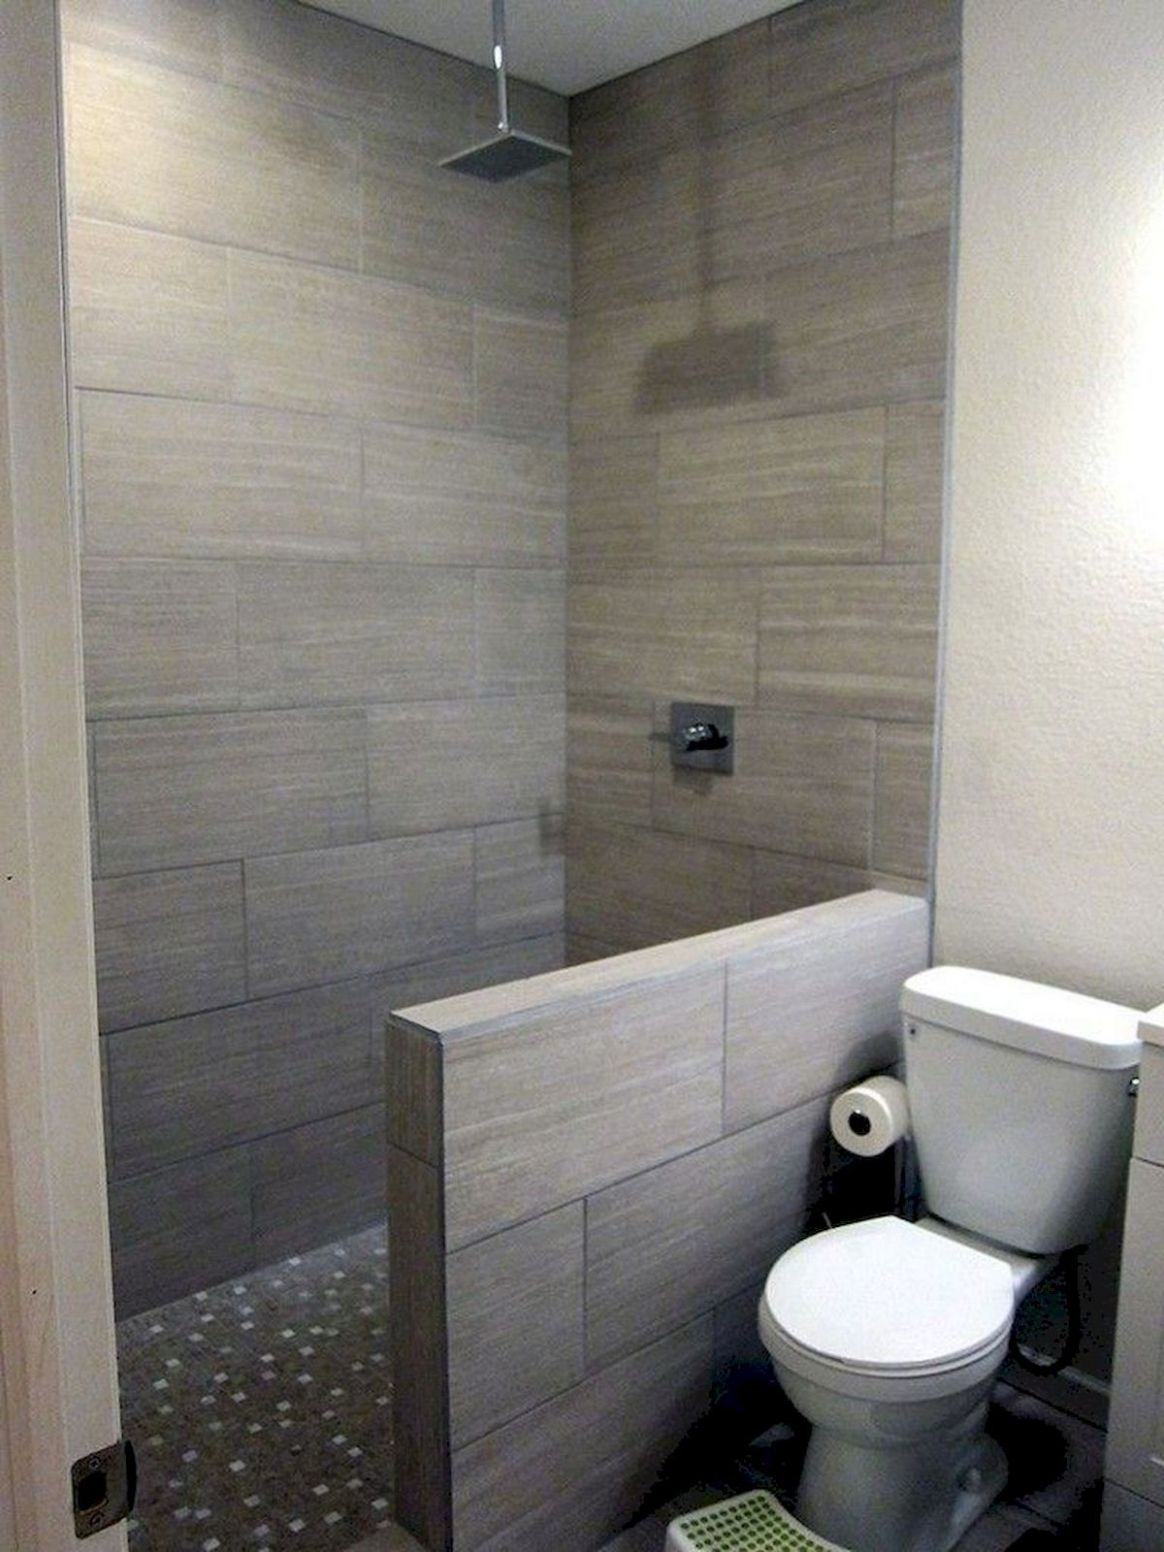 11 Stunning Small Bathroom Ideas On A Budget (With images) | Small ...